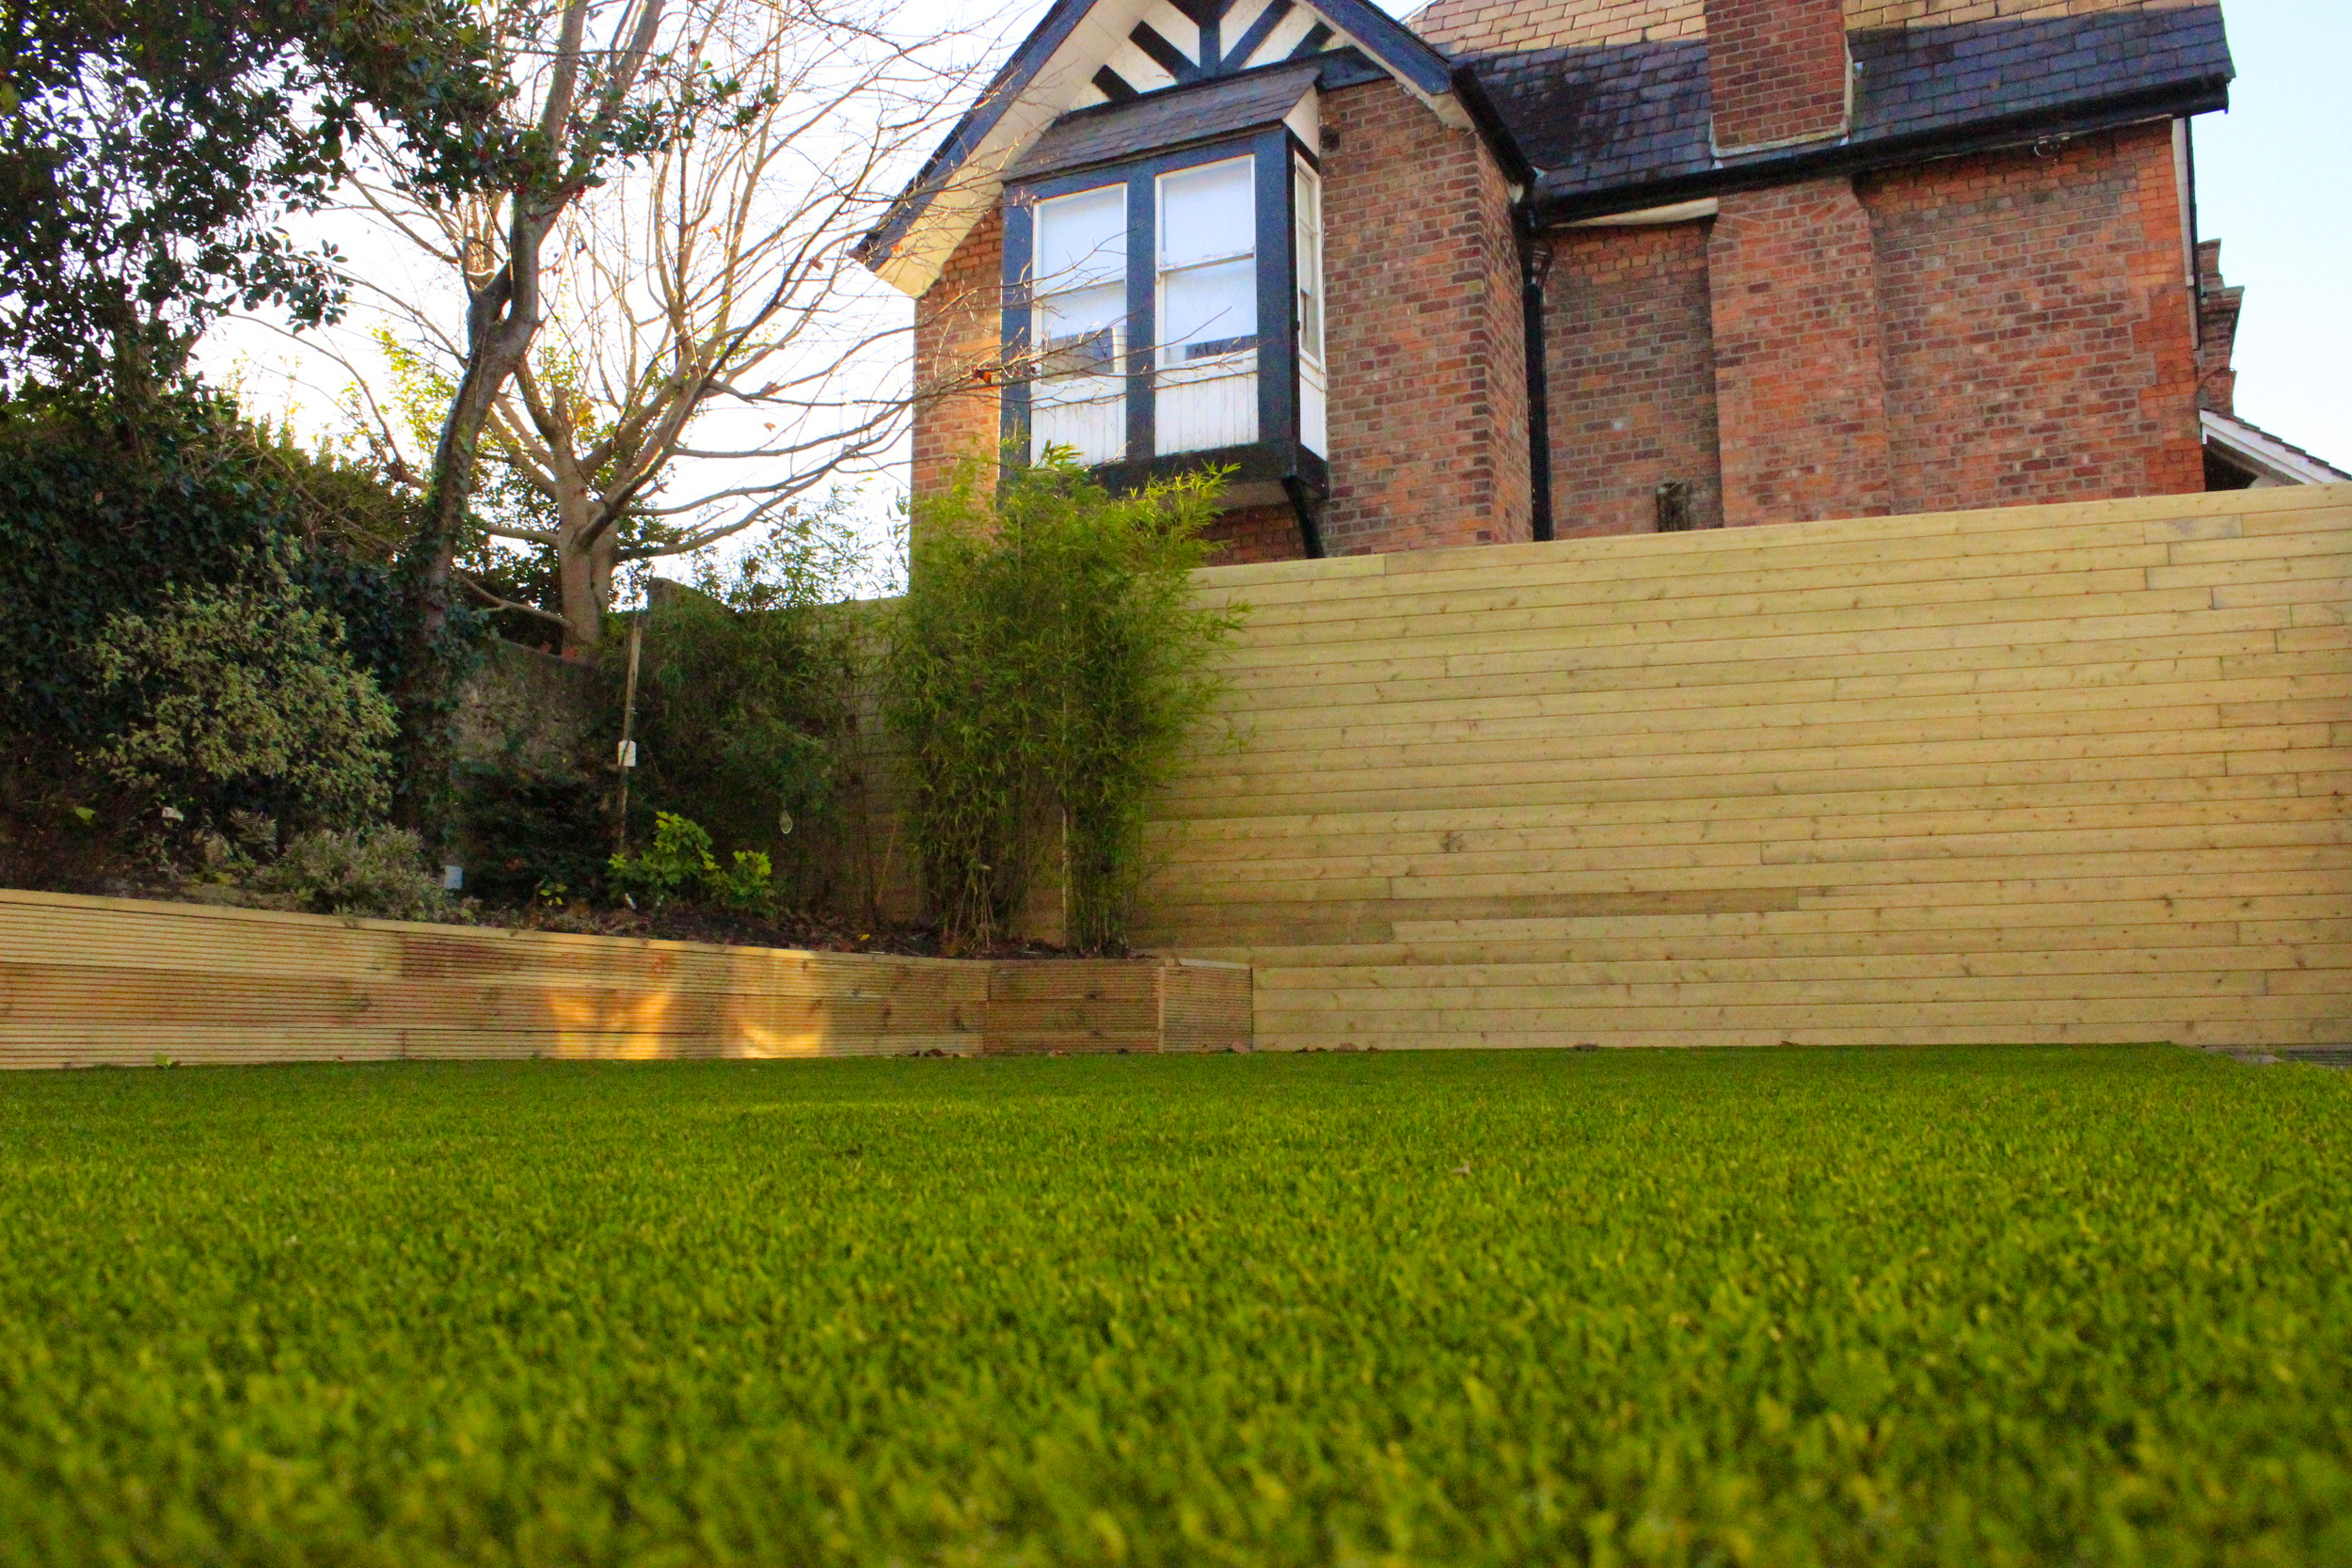 tigerturf vision Plus artificial grass installed